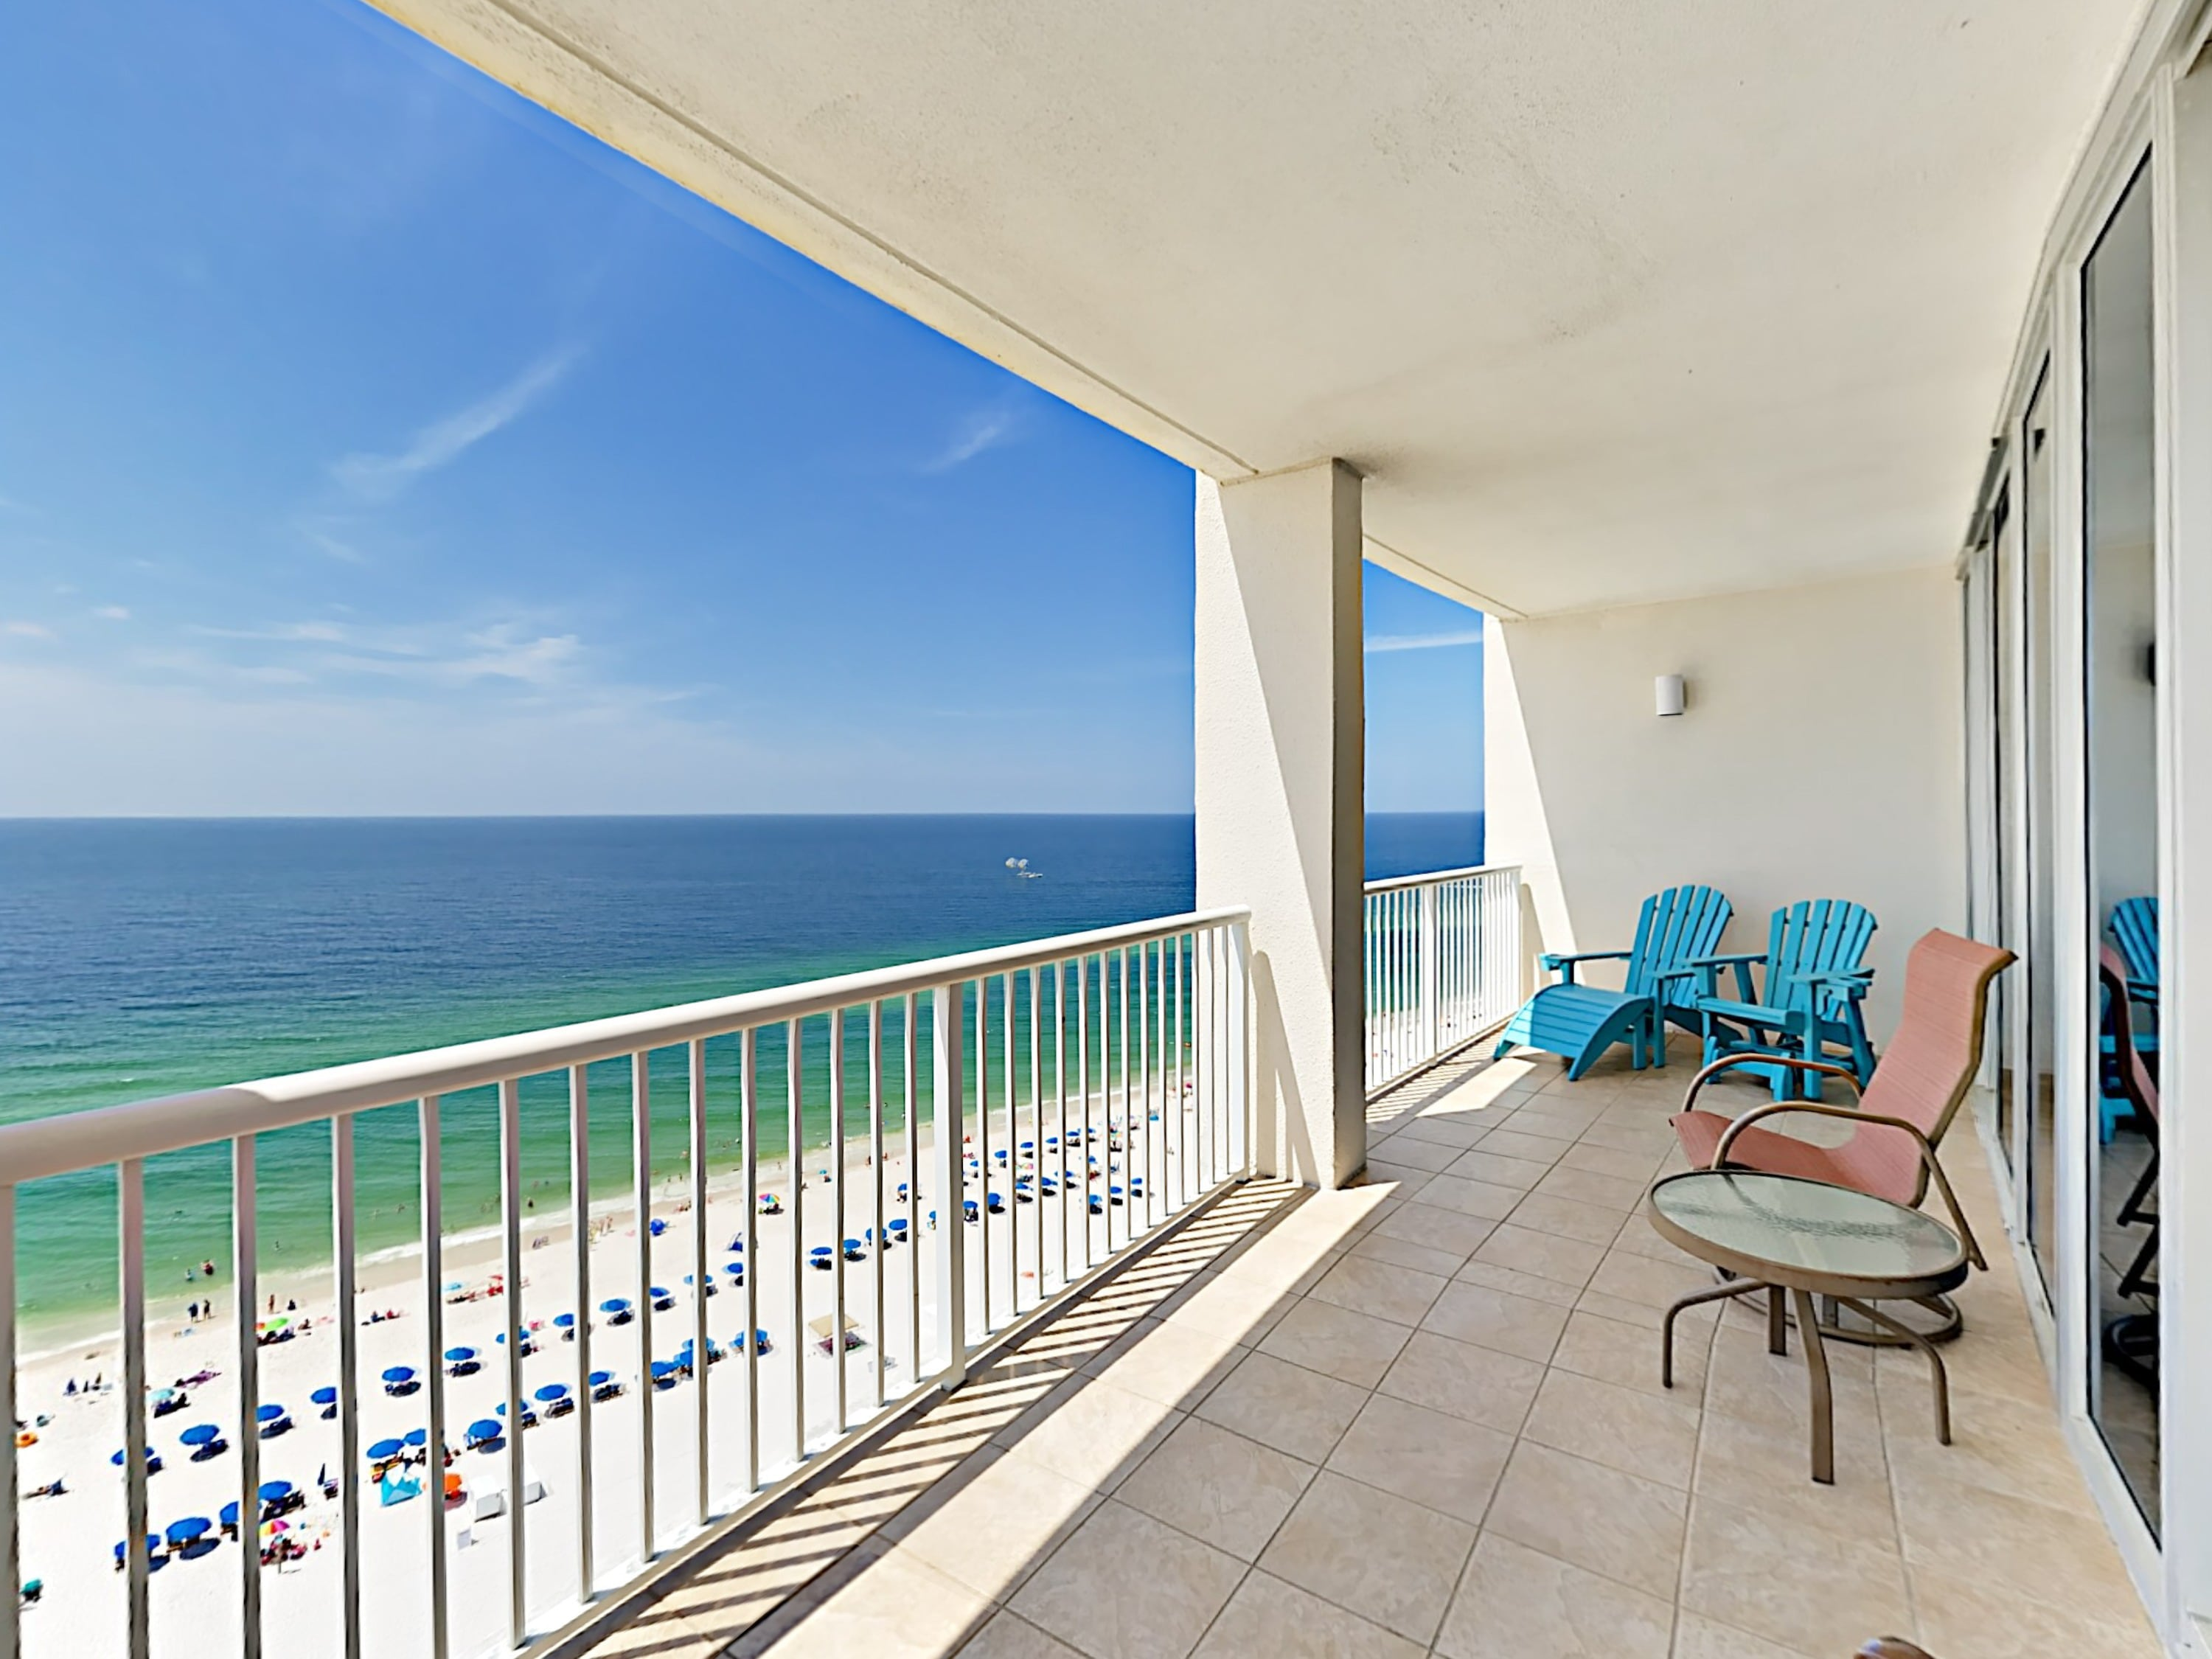 Welcome to Gulf Shores! Sip lemonade on the private balcony with mesmerizing Gulf views.